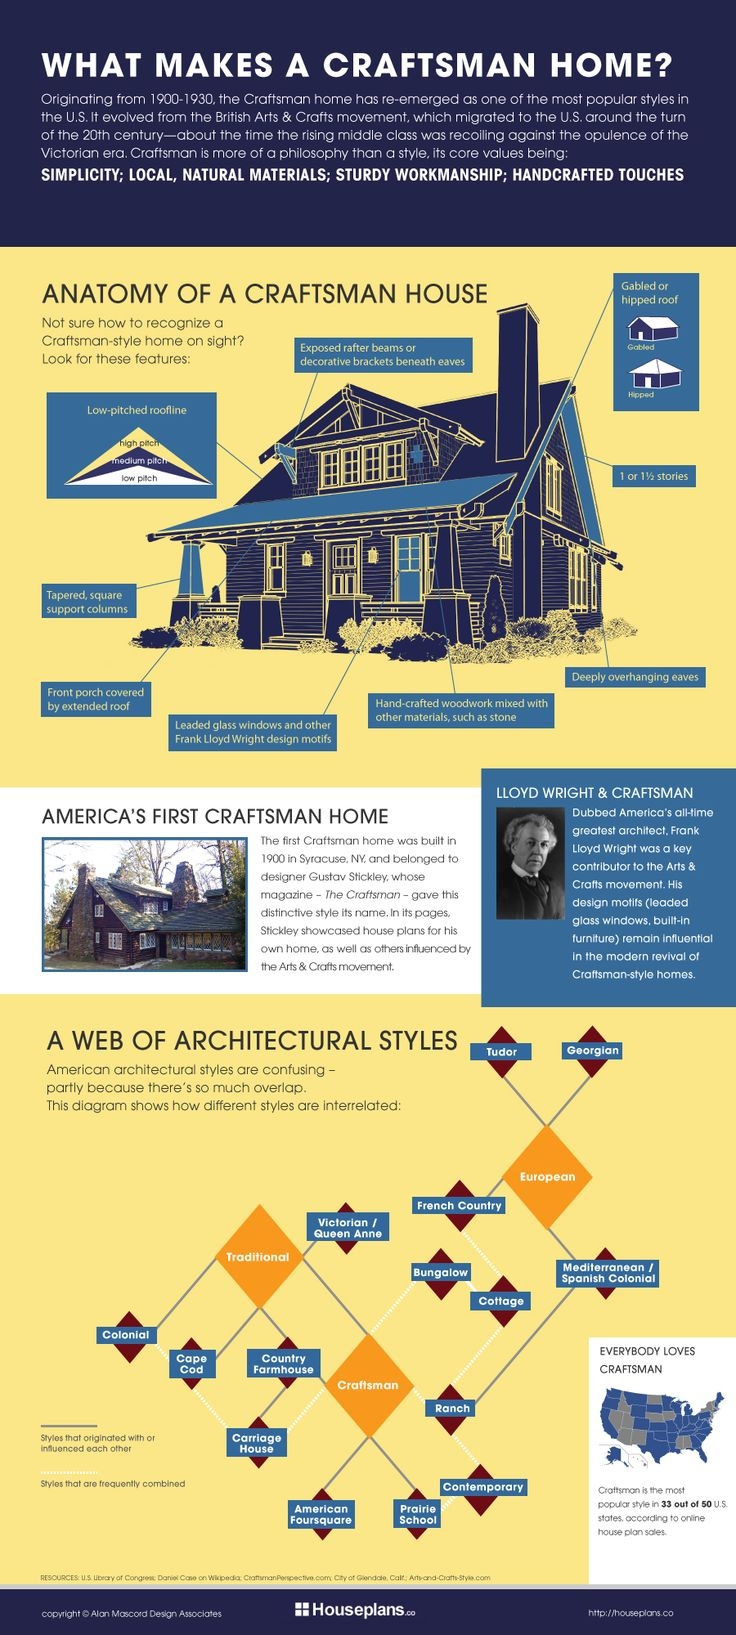 Do you live in a Craftsman home? Not sure? Here's a great infographic: What Makes A Craftsman Home